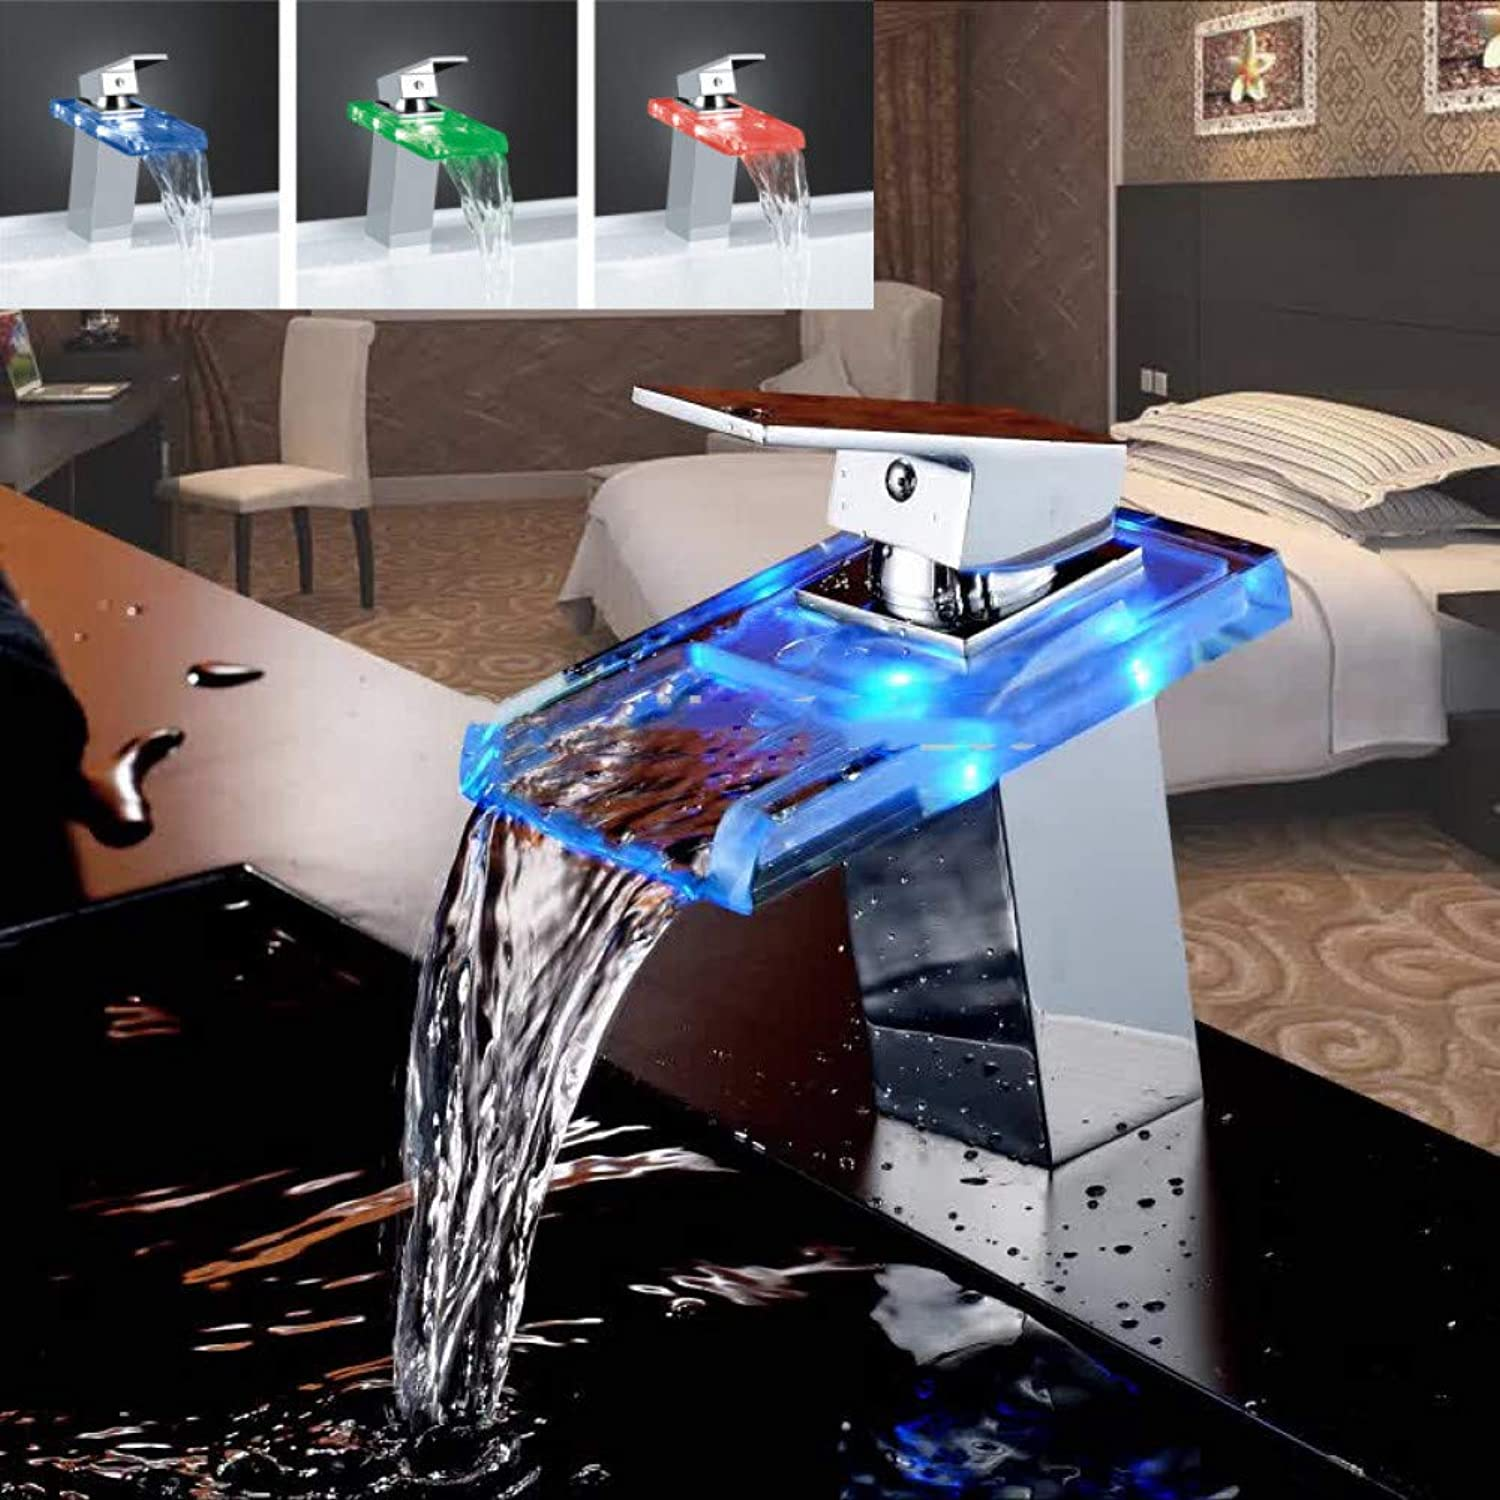 ZHFJGKR&ZL Athroom Waterfall Led Faucet Glass Waterfall Brass Basin Faucet Bathroom Mixer Tap Deck Mounted Basin Sink Mixer Tap